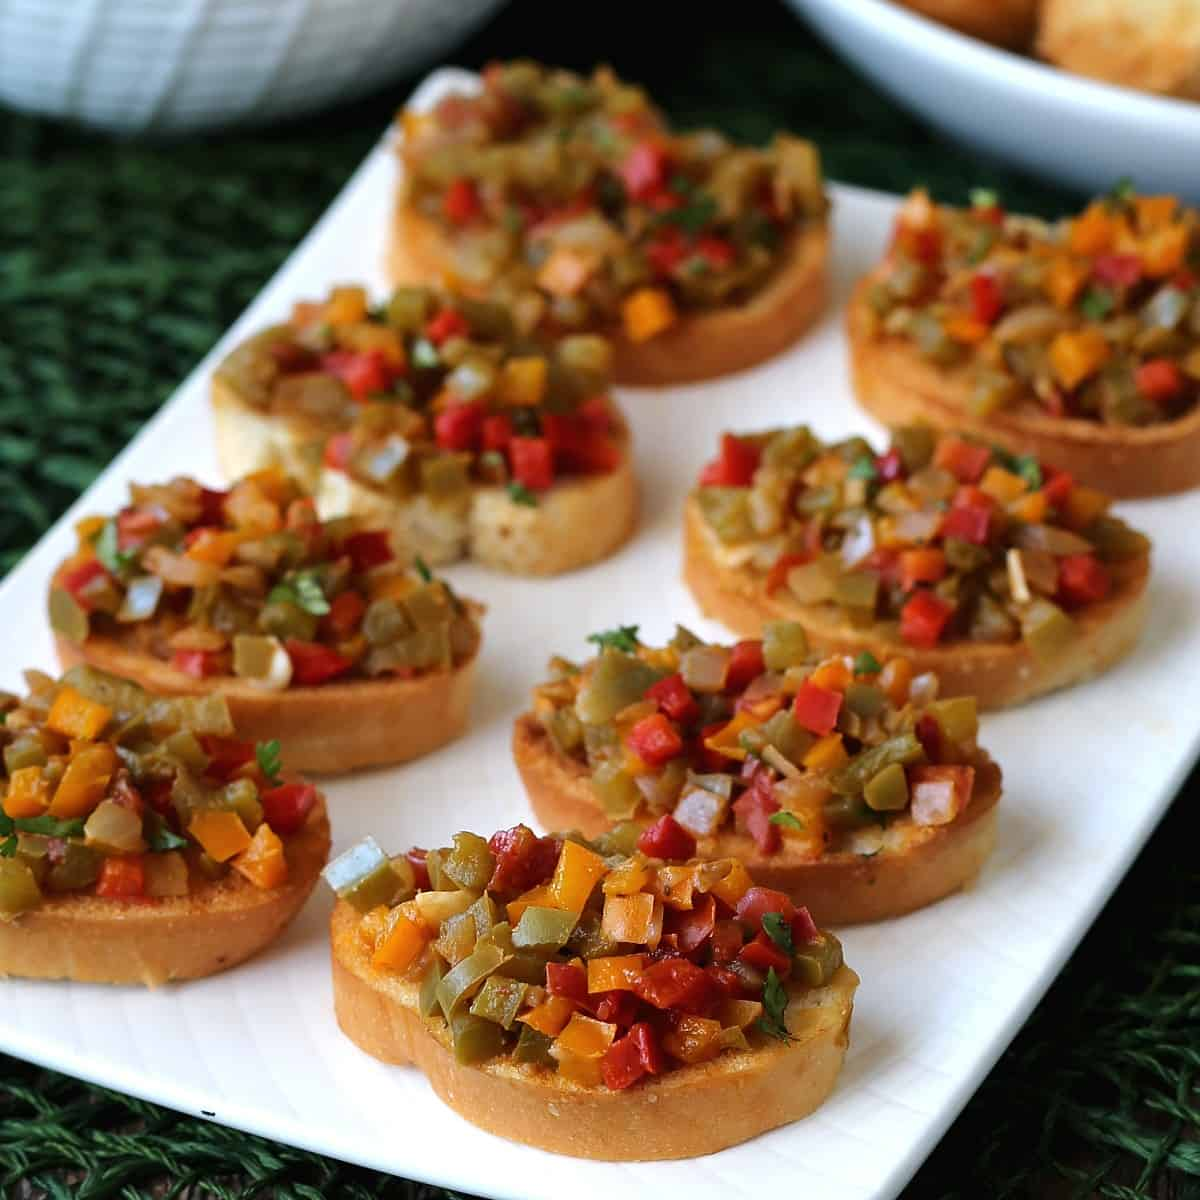 Vegan Christmas recipes appetizer of crostini toasts with balsamic bell pepper bruschetta in rows.